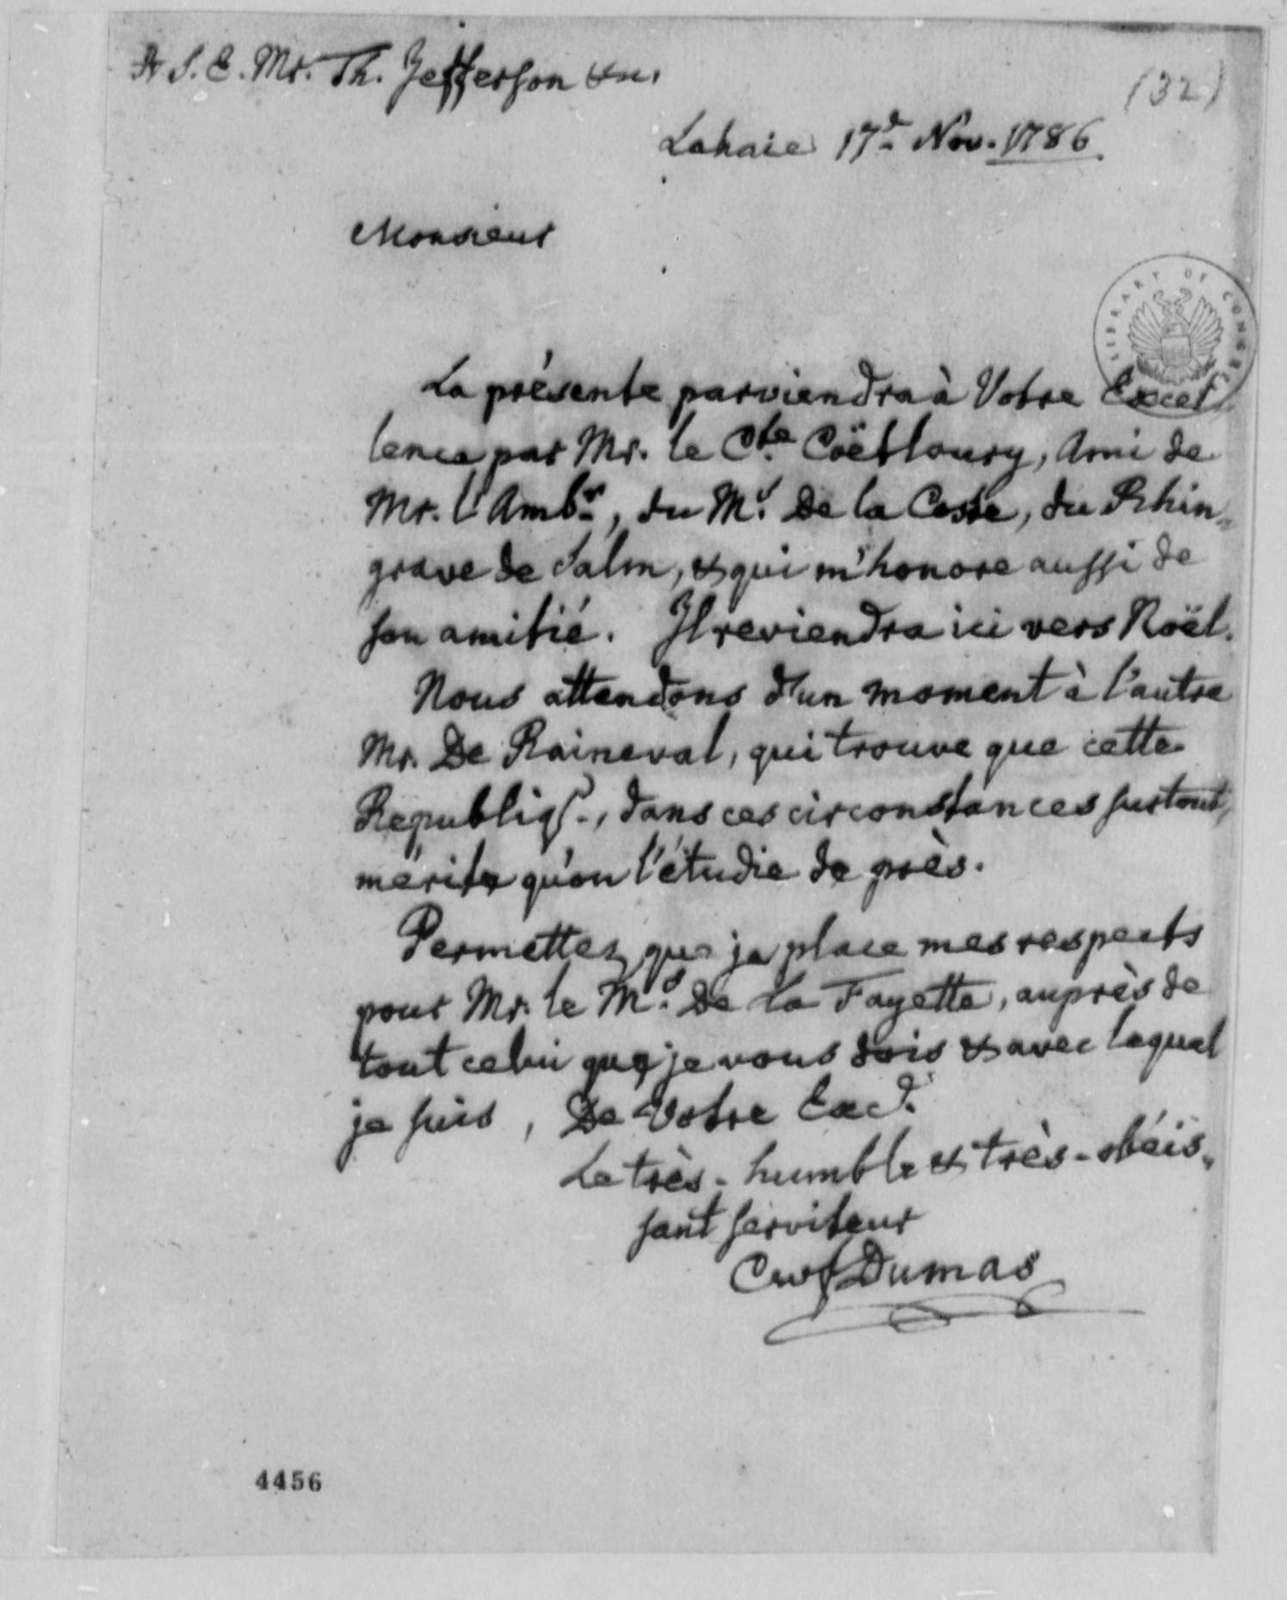 Charles William Frederic Dumas to Thomas Jefferson, November 17, 1786, in French